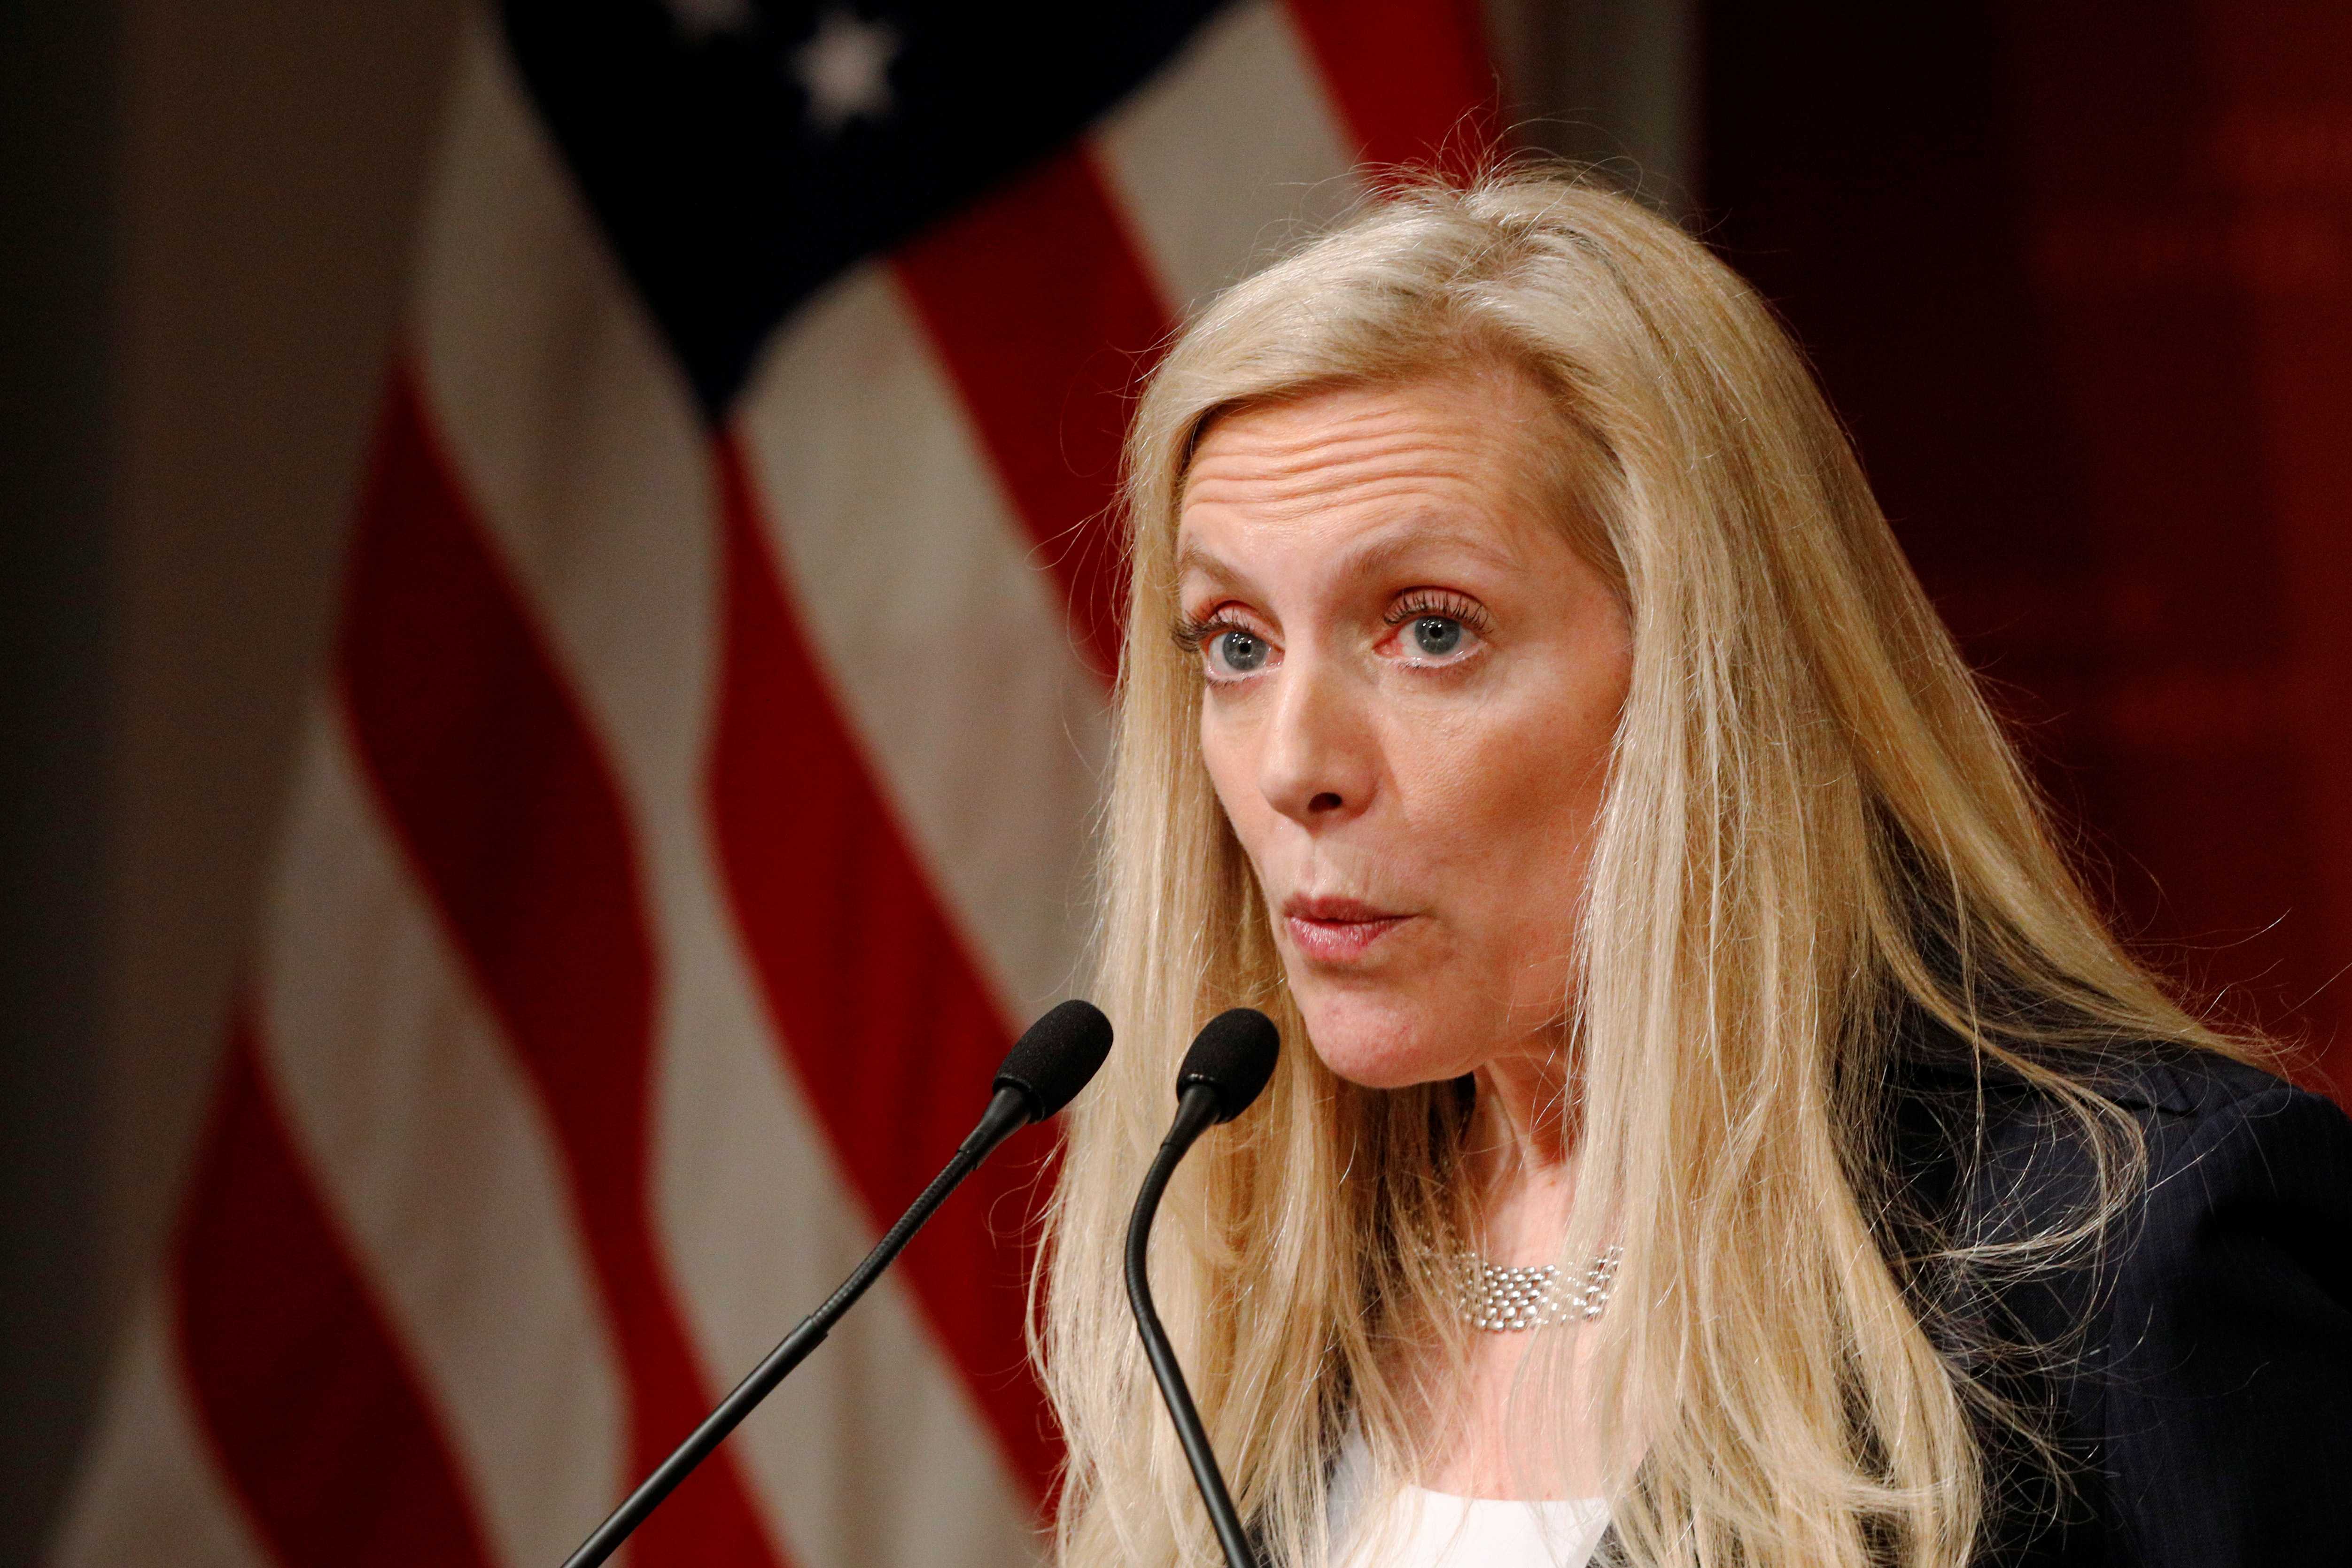 Federal Reserve Board Governor Lael Brainard speaks at the John F. Kennedy School of Government at Harvard University in Cambridge, Massachusetts, U.S., March 1, 2017. REUTERS/Brian Snyder/Files